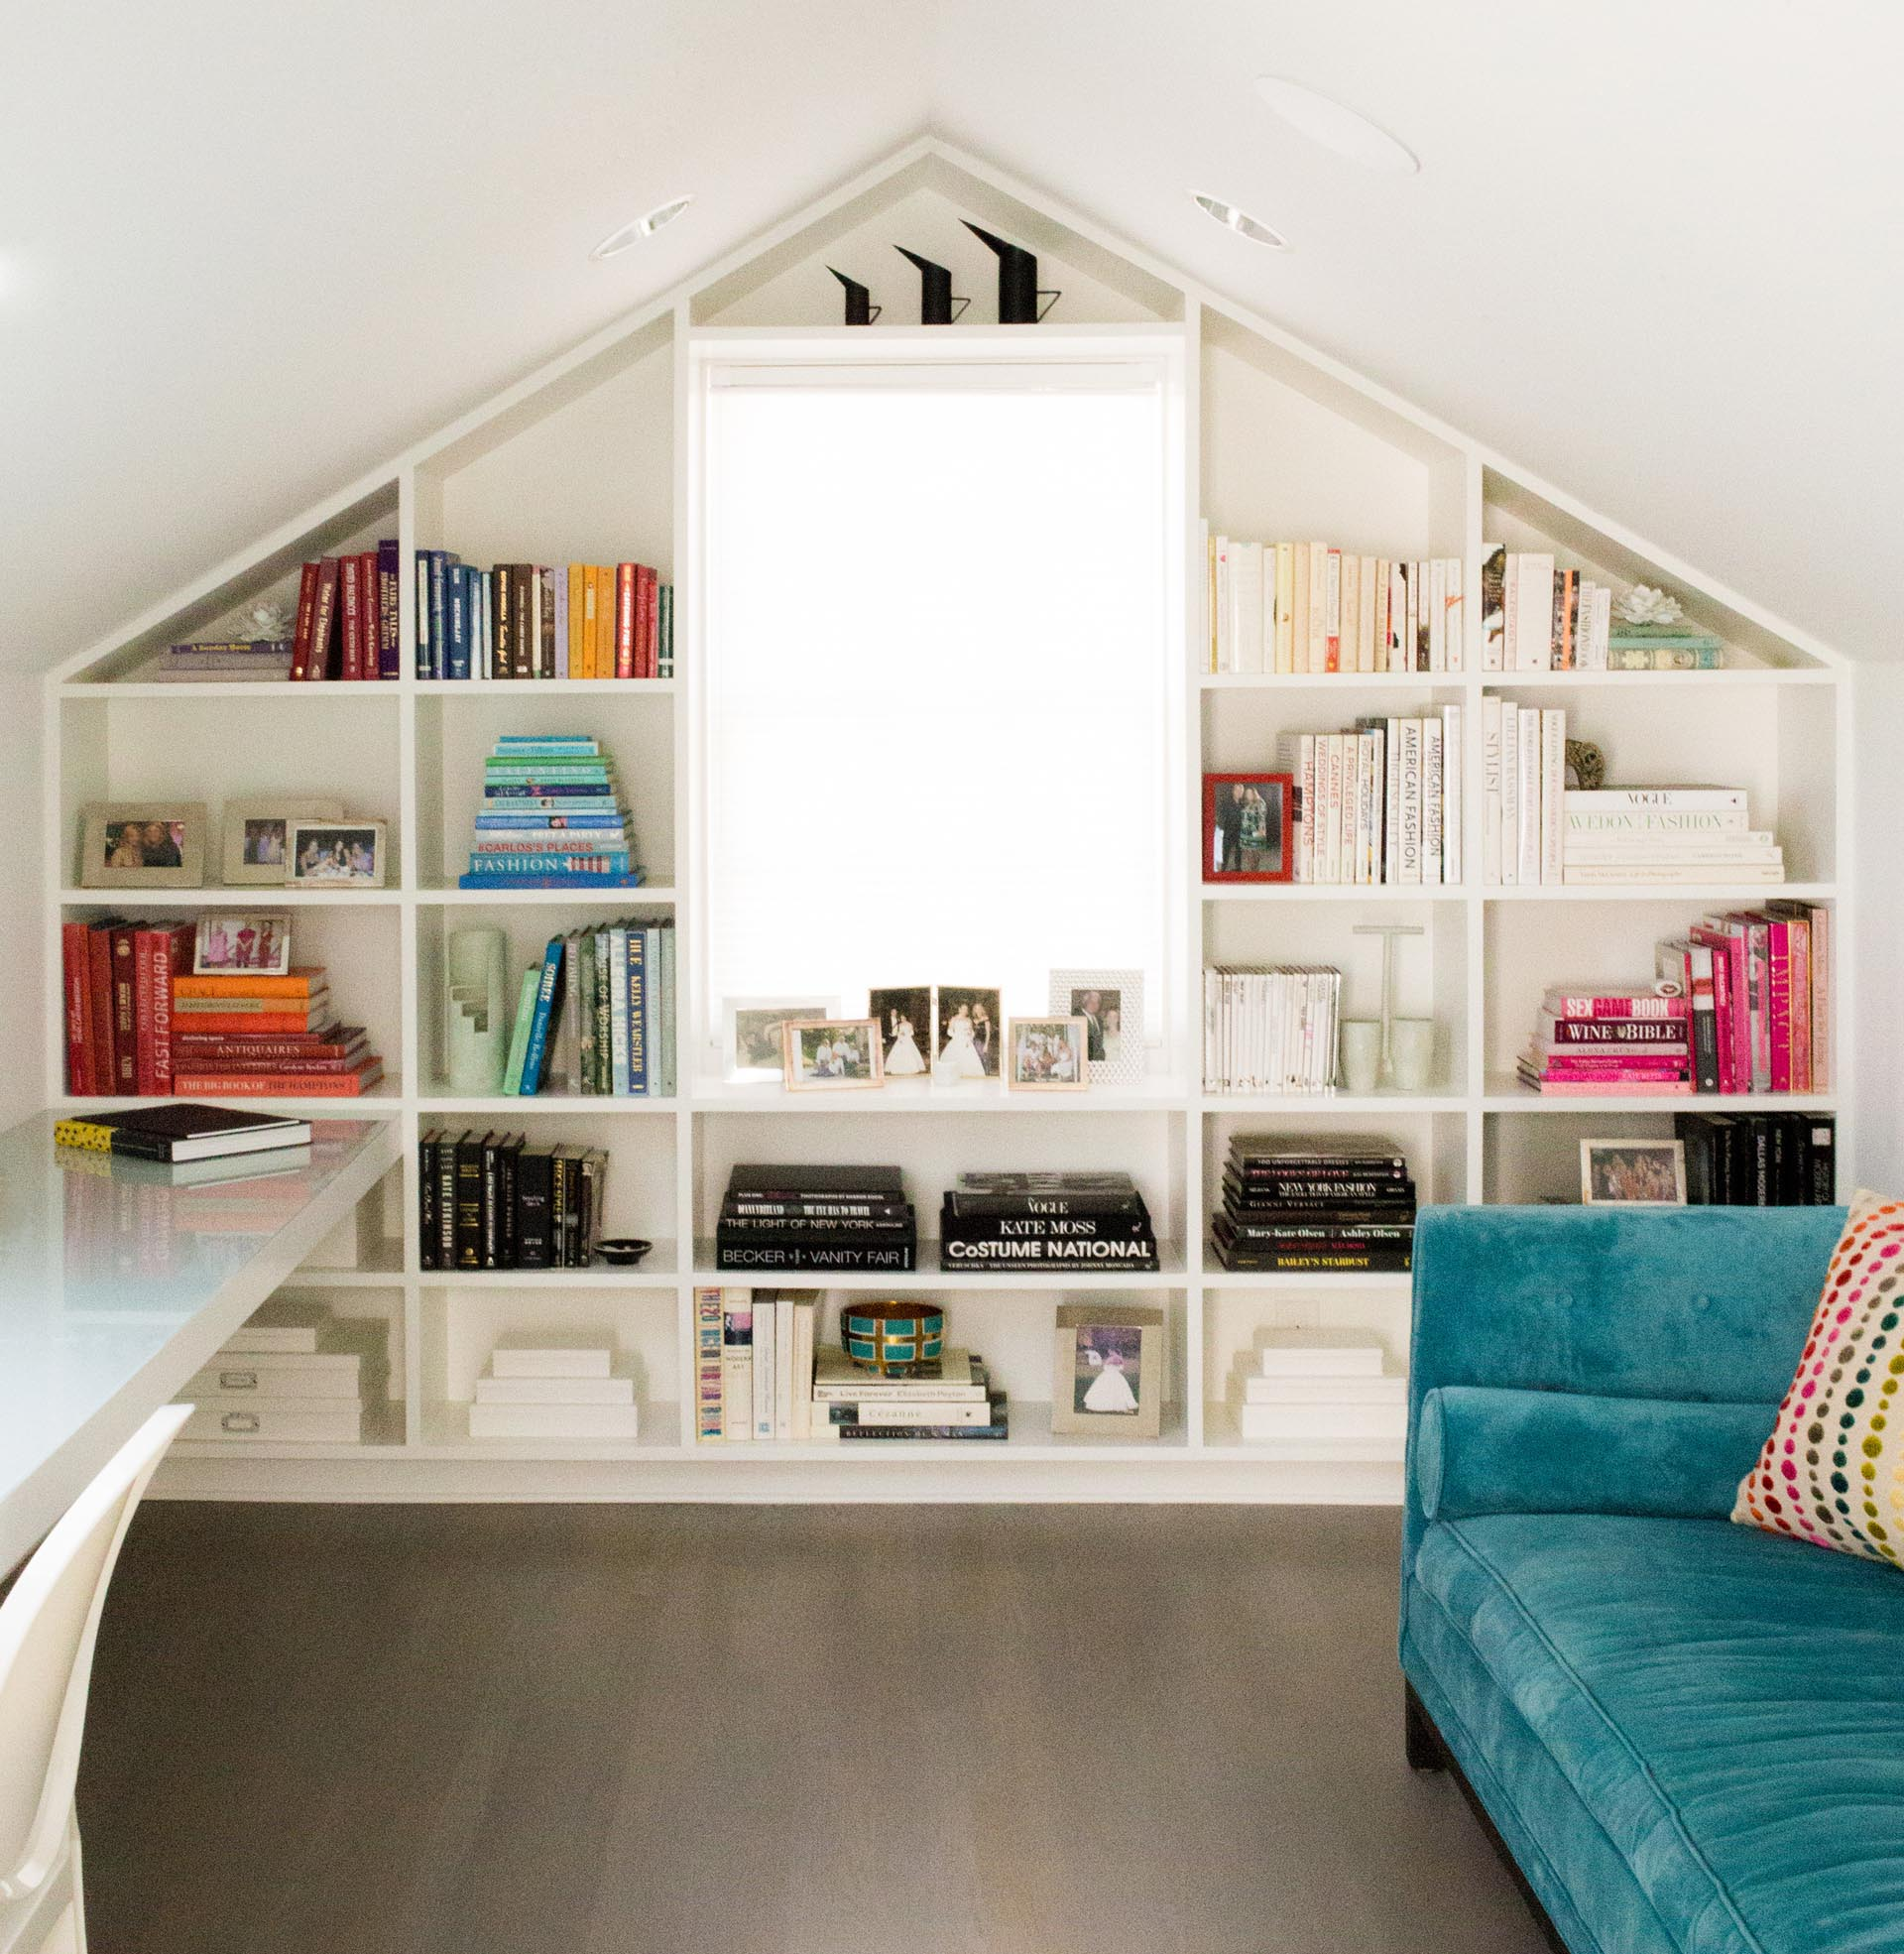 The focal point of this home office is the custom bookshelf that fills the entire wall and wraps around the window.